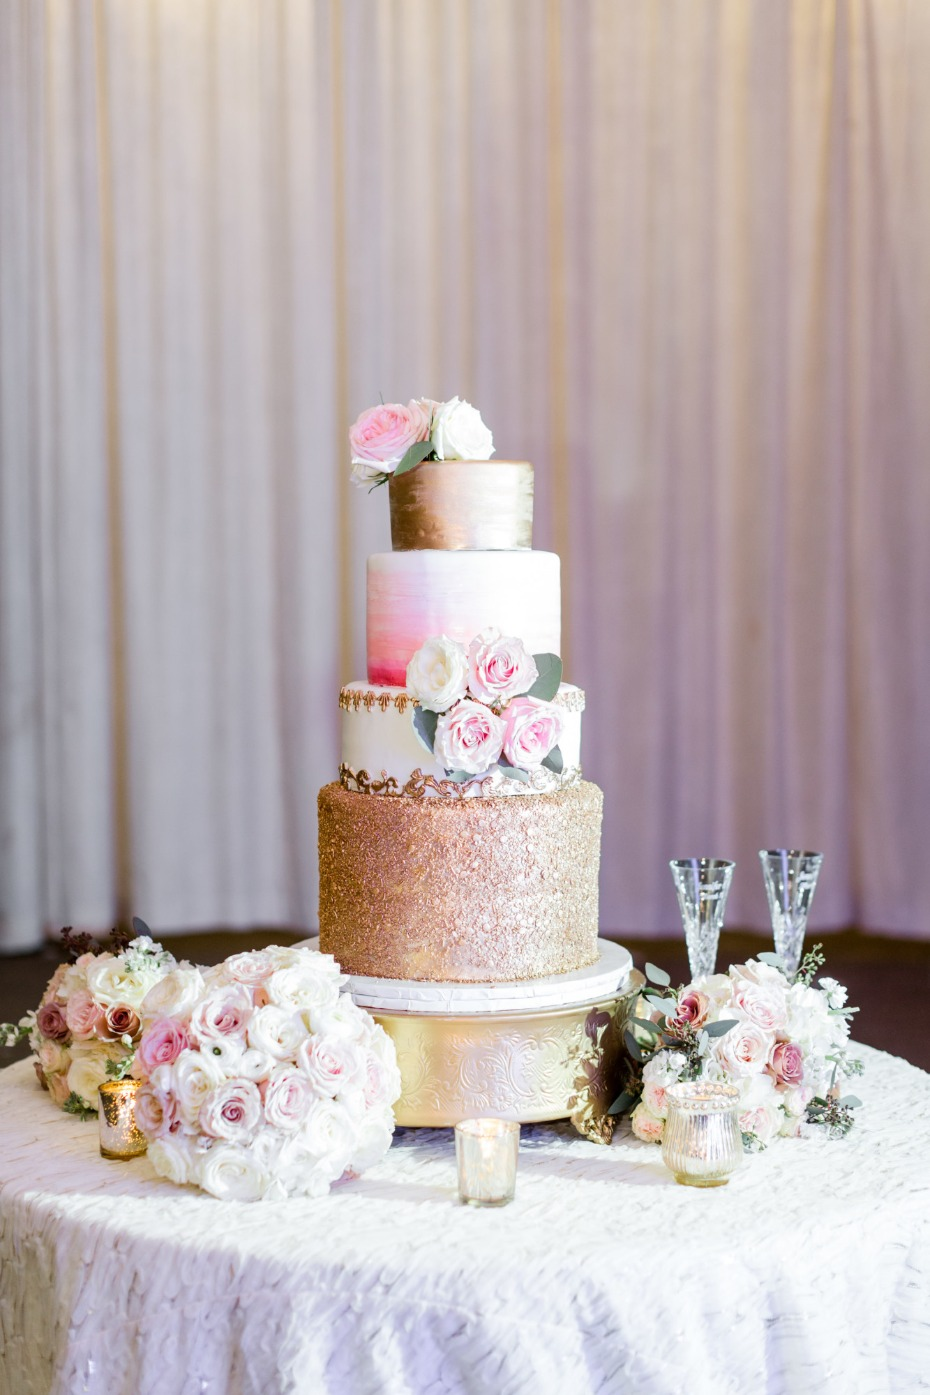 Blush, white and gold wedding cake